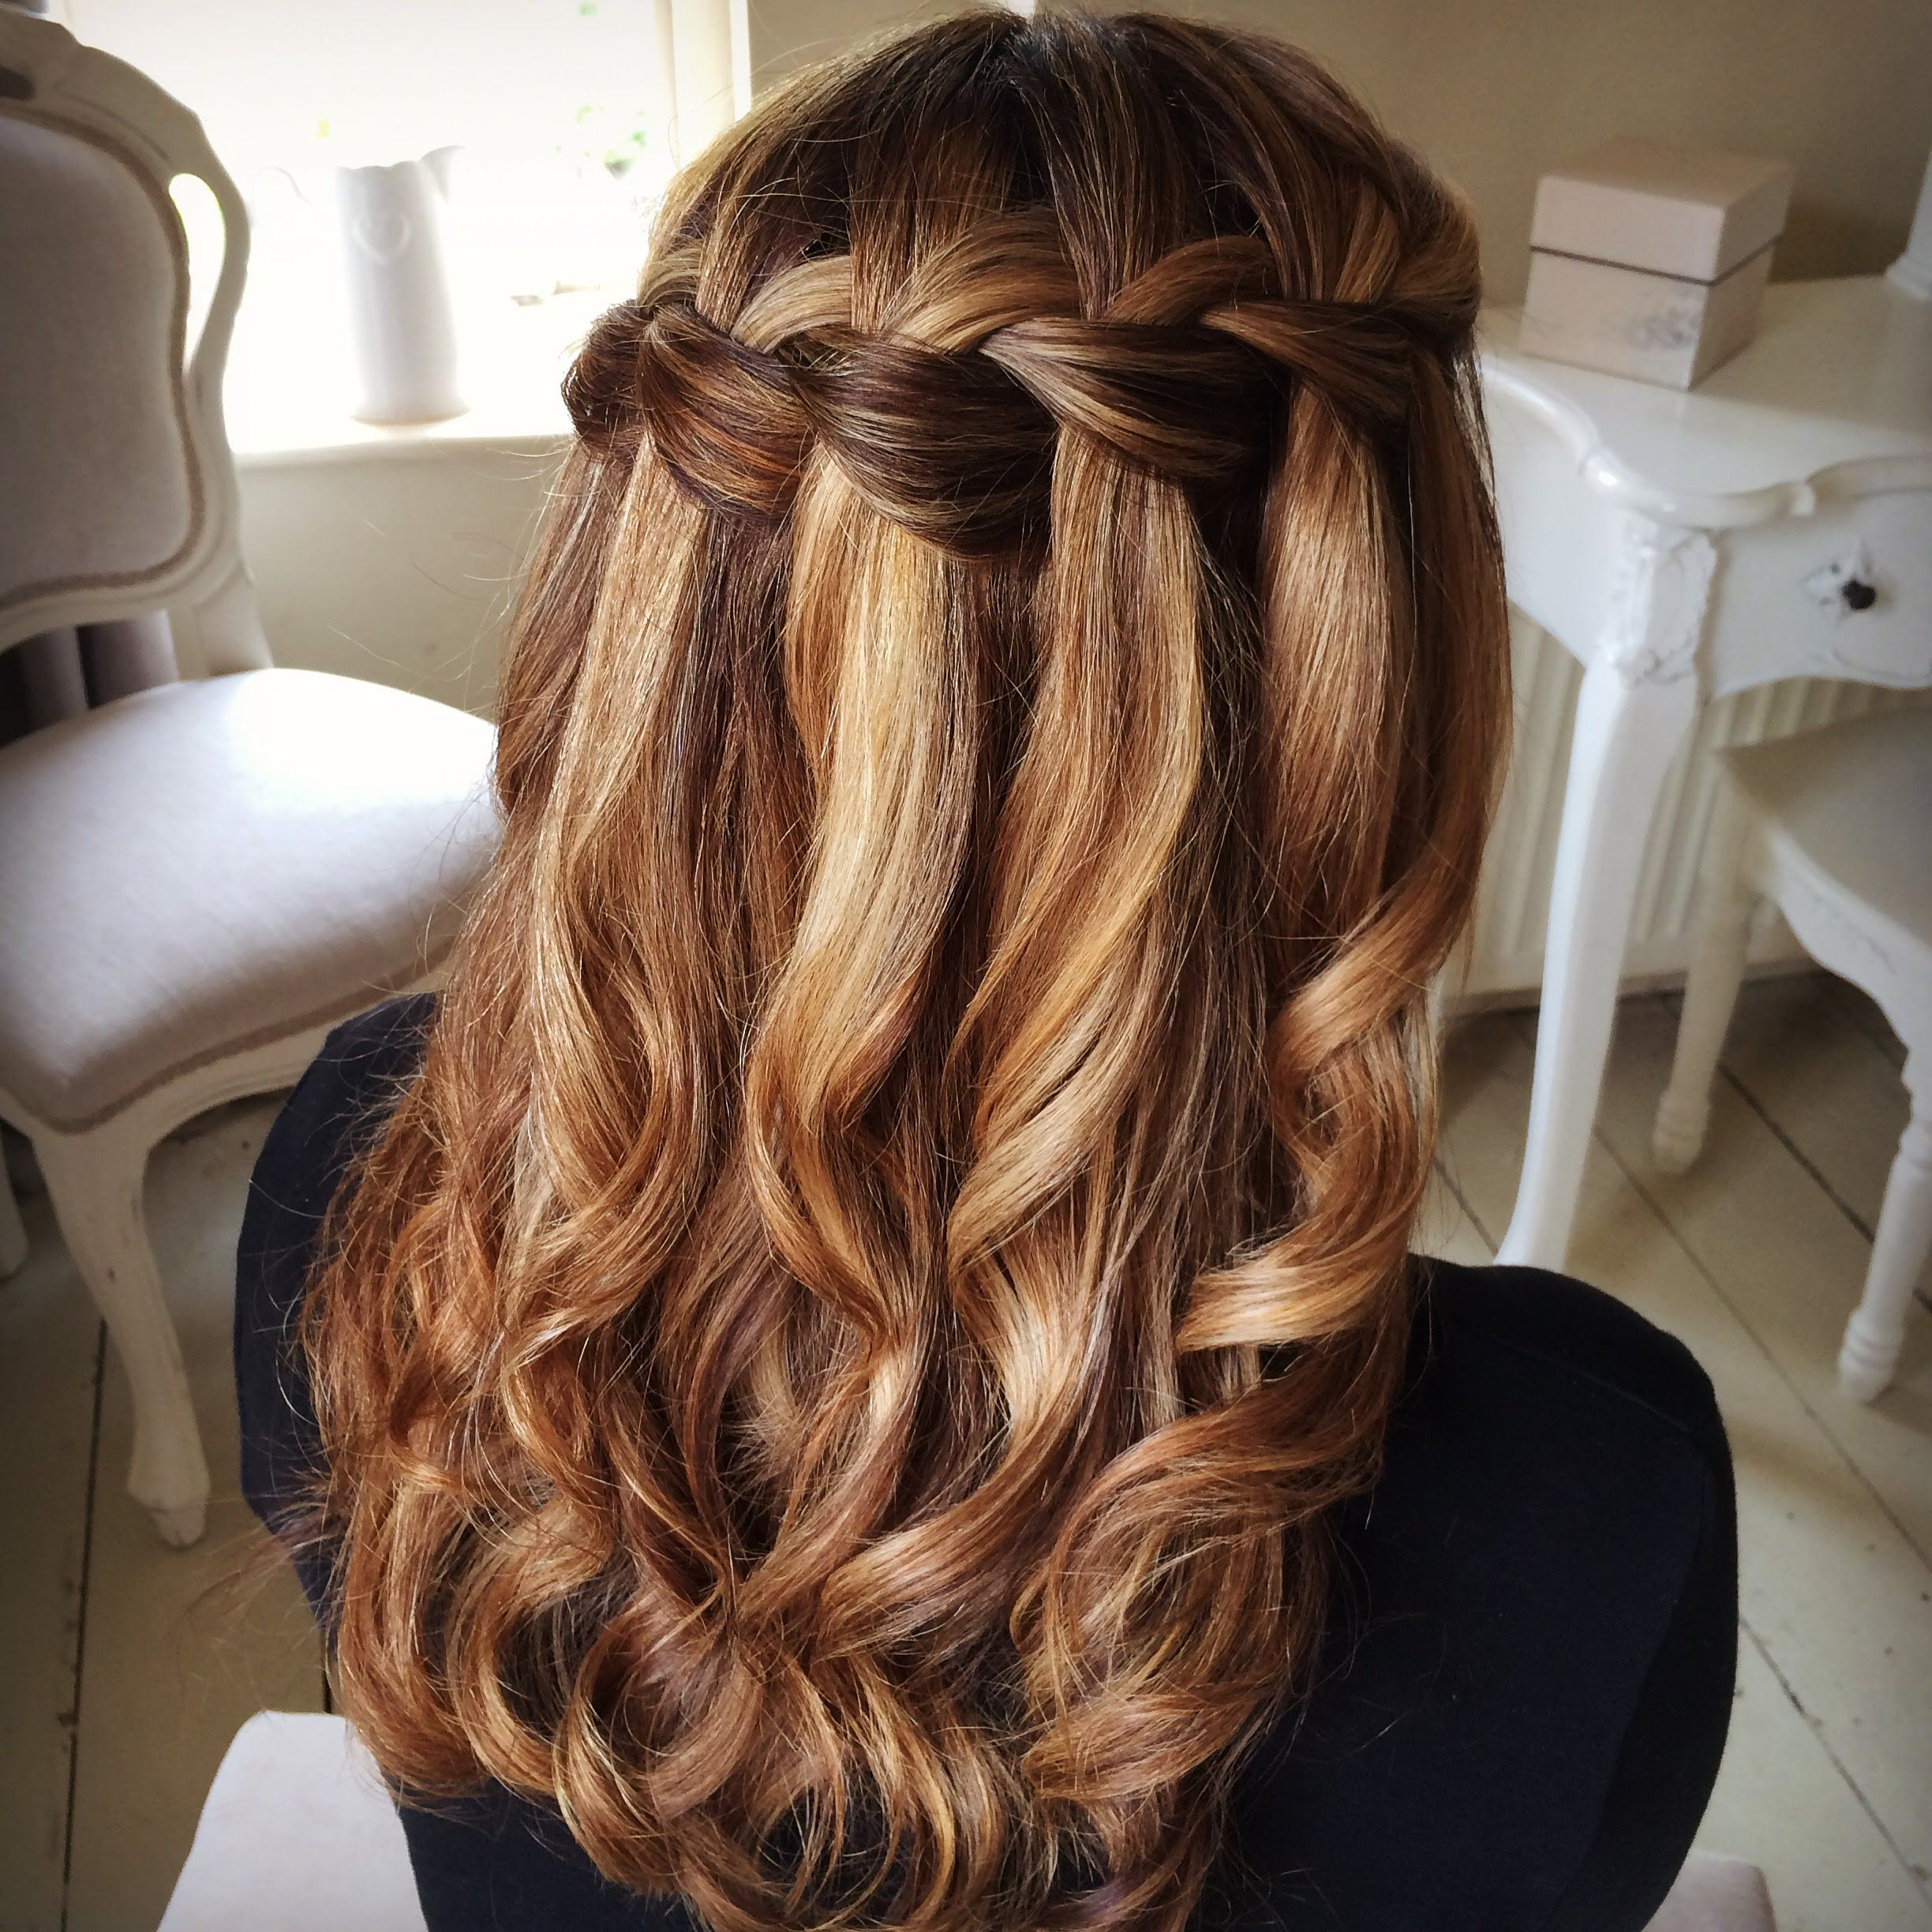 Most Popular Diagonal Waterfall Braid In Half Up Bridal Hairstyles With Waterfall Braidsweethearts Hair Design (View 12 of 20)